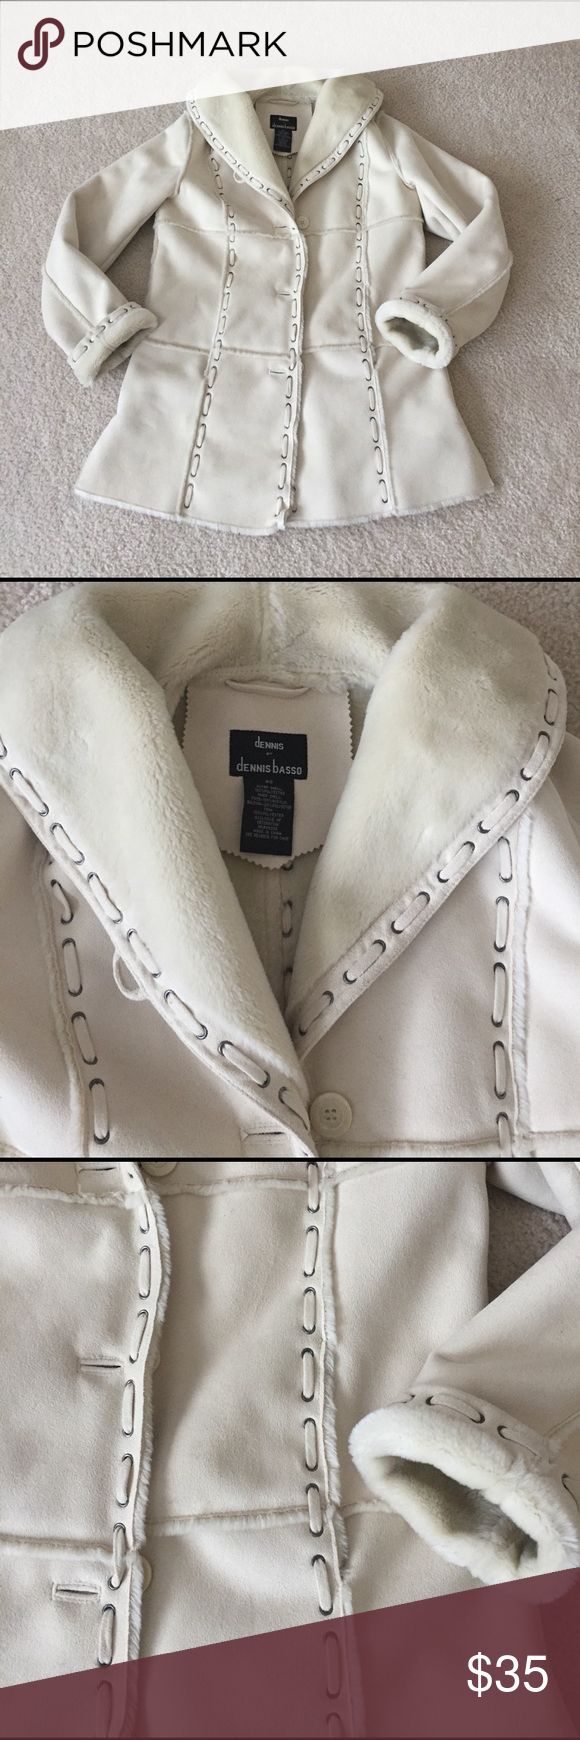 Dennis Basso Coat Famous designer coat by Dennis Basso; beautiful Faux shearling with details; size is XS but I would say run big, could fit size medium; I am a size 4/6 in a dress size and this fits me perfectly; has a very nice shape; color is cream; no stains or rips; smoke free home🌺 Jackets & Coats